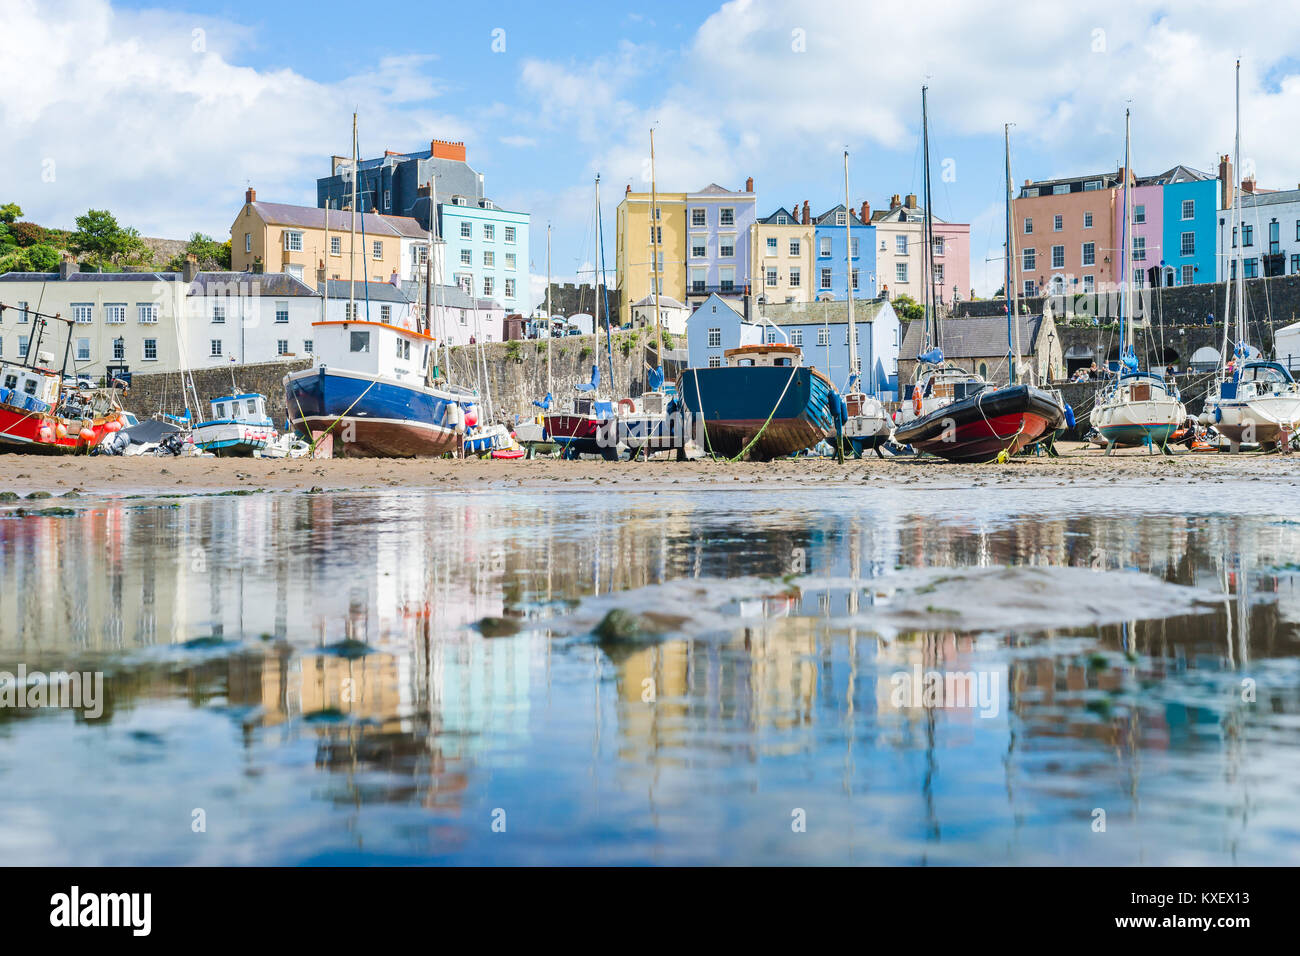 Boats in the bay at low tide with town view in Tenby bay, Wales - Stock Image